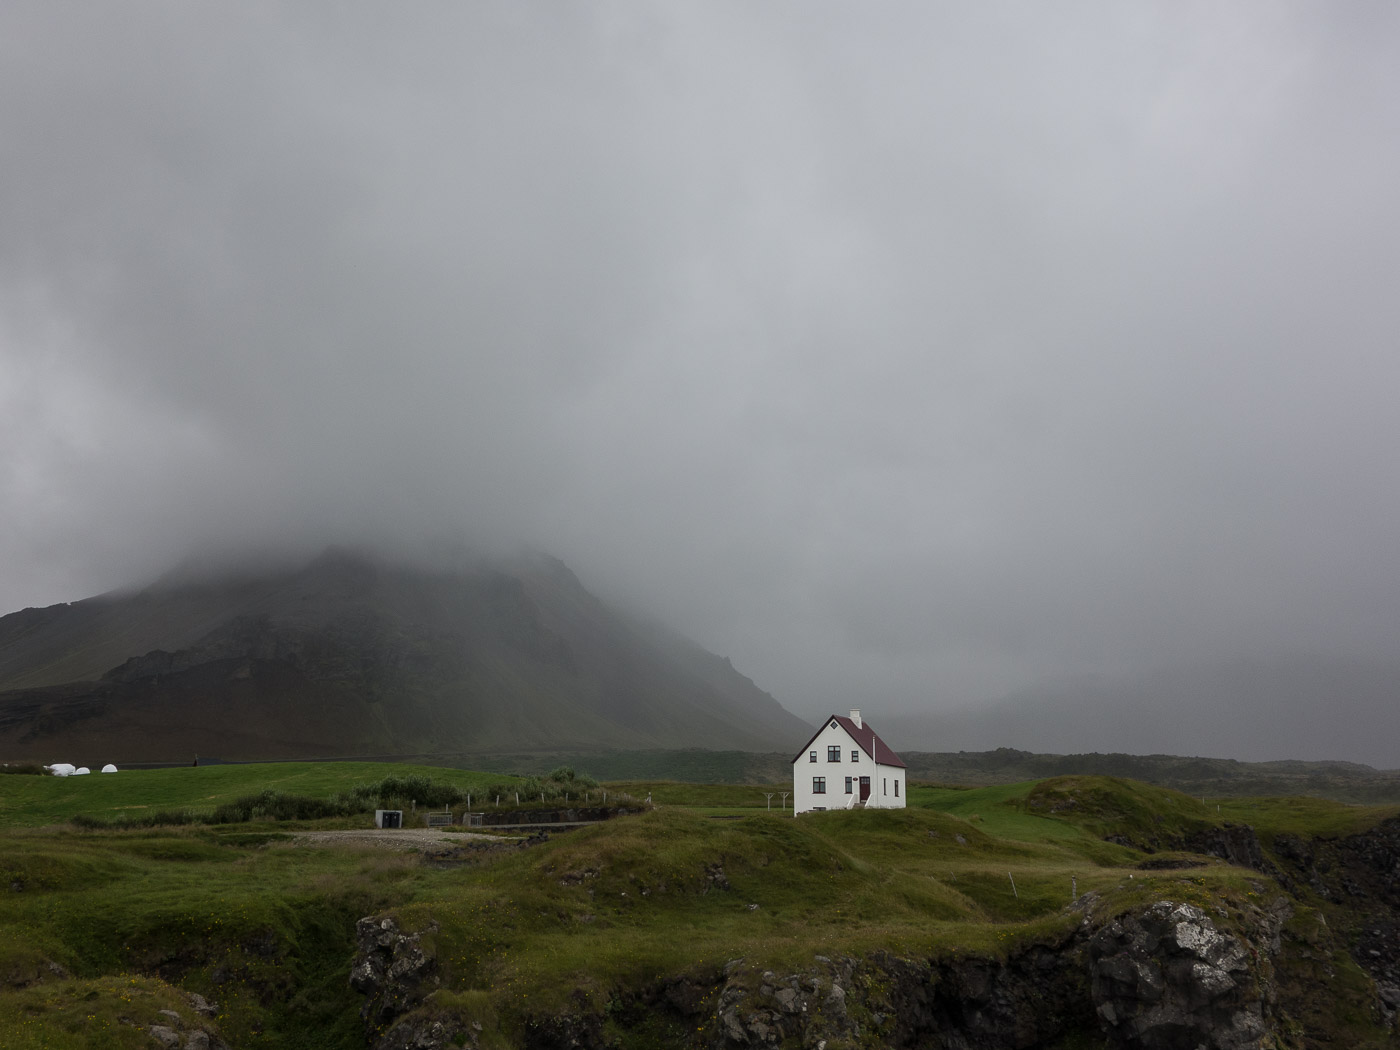 Snæfellsnes. This and that, landscape. - Snæfellsnes. IX. (23 July 2016)